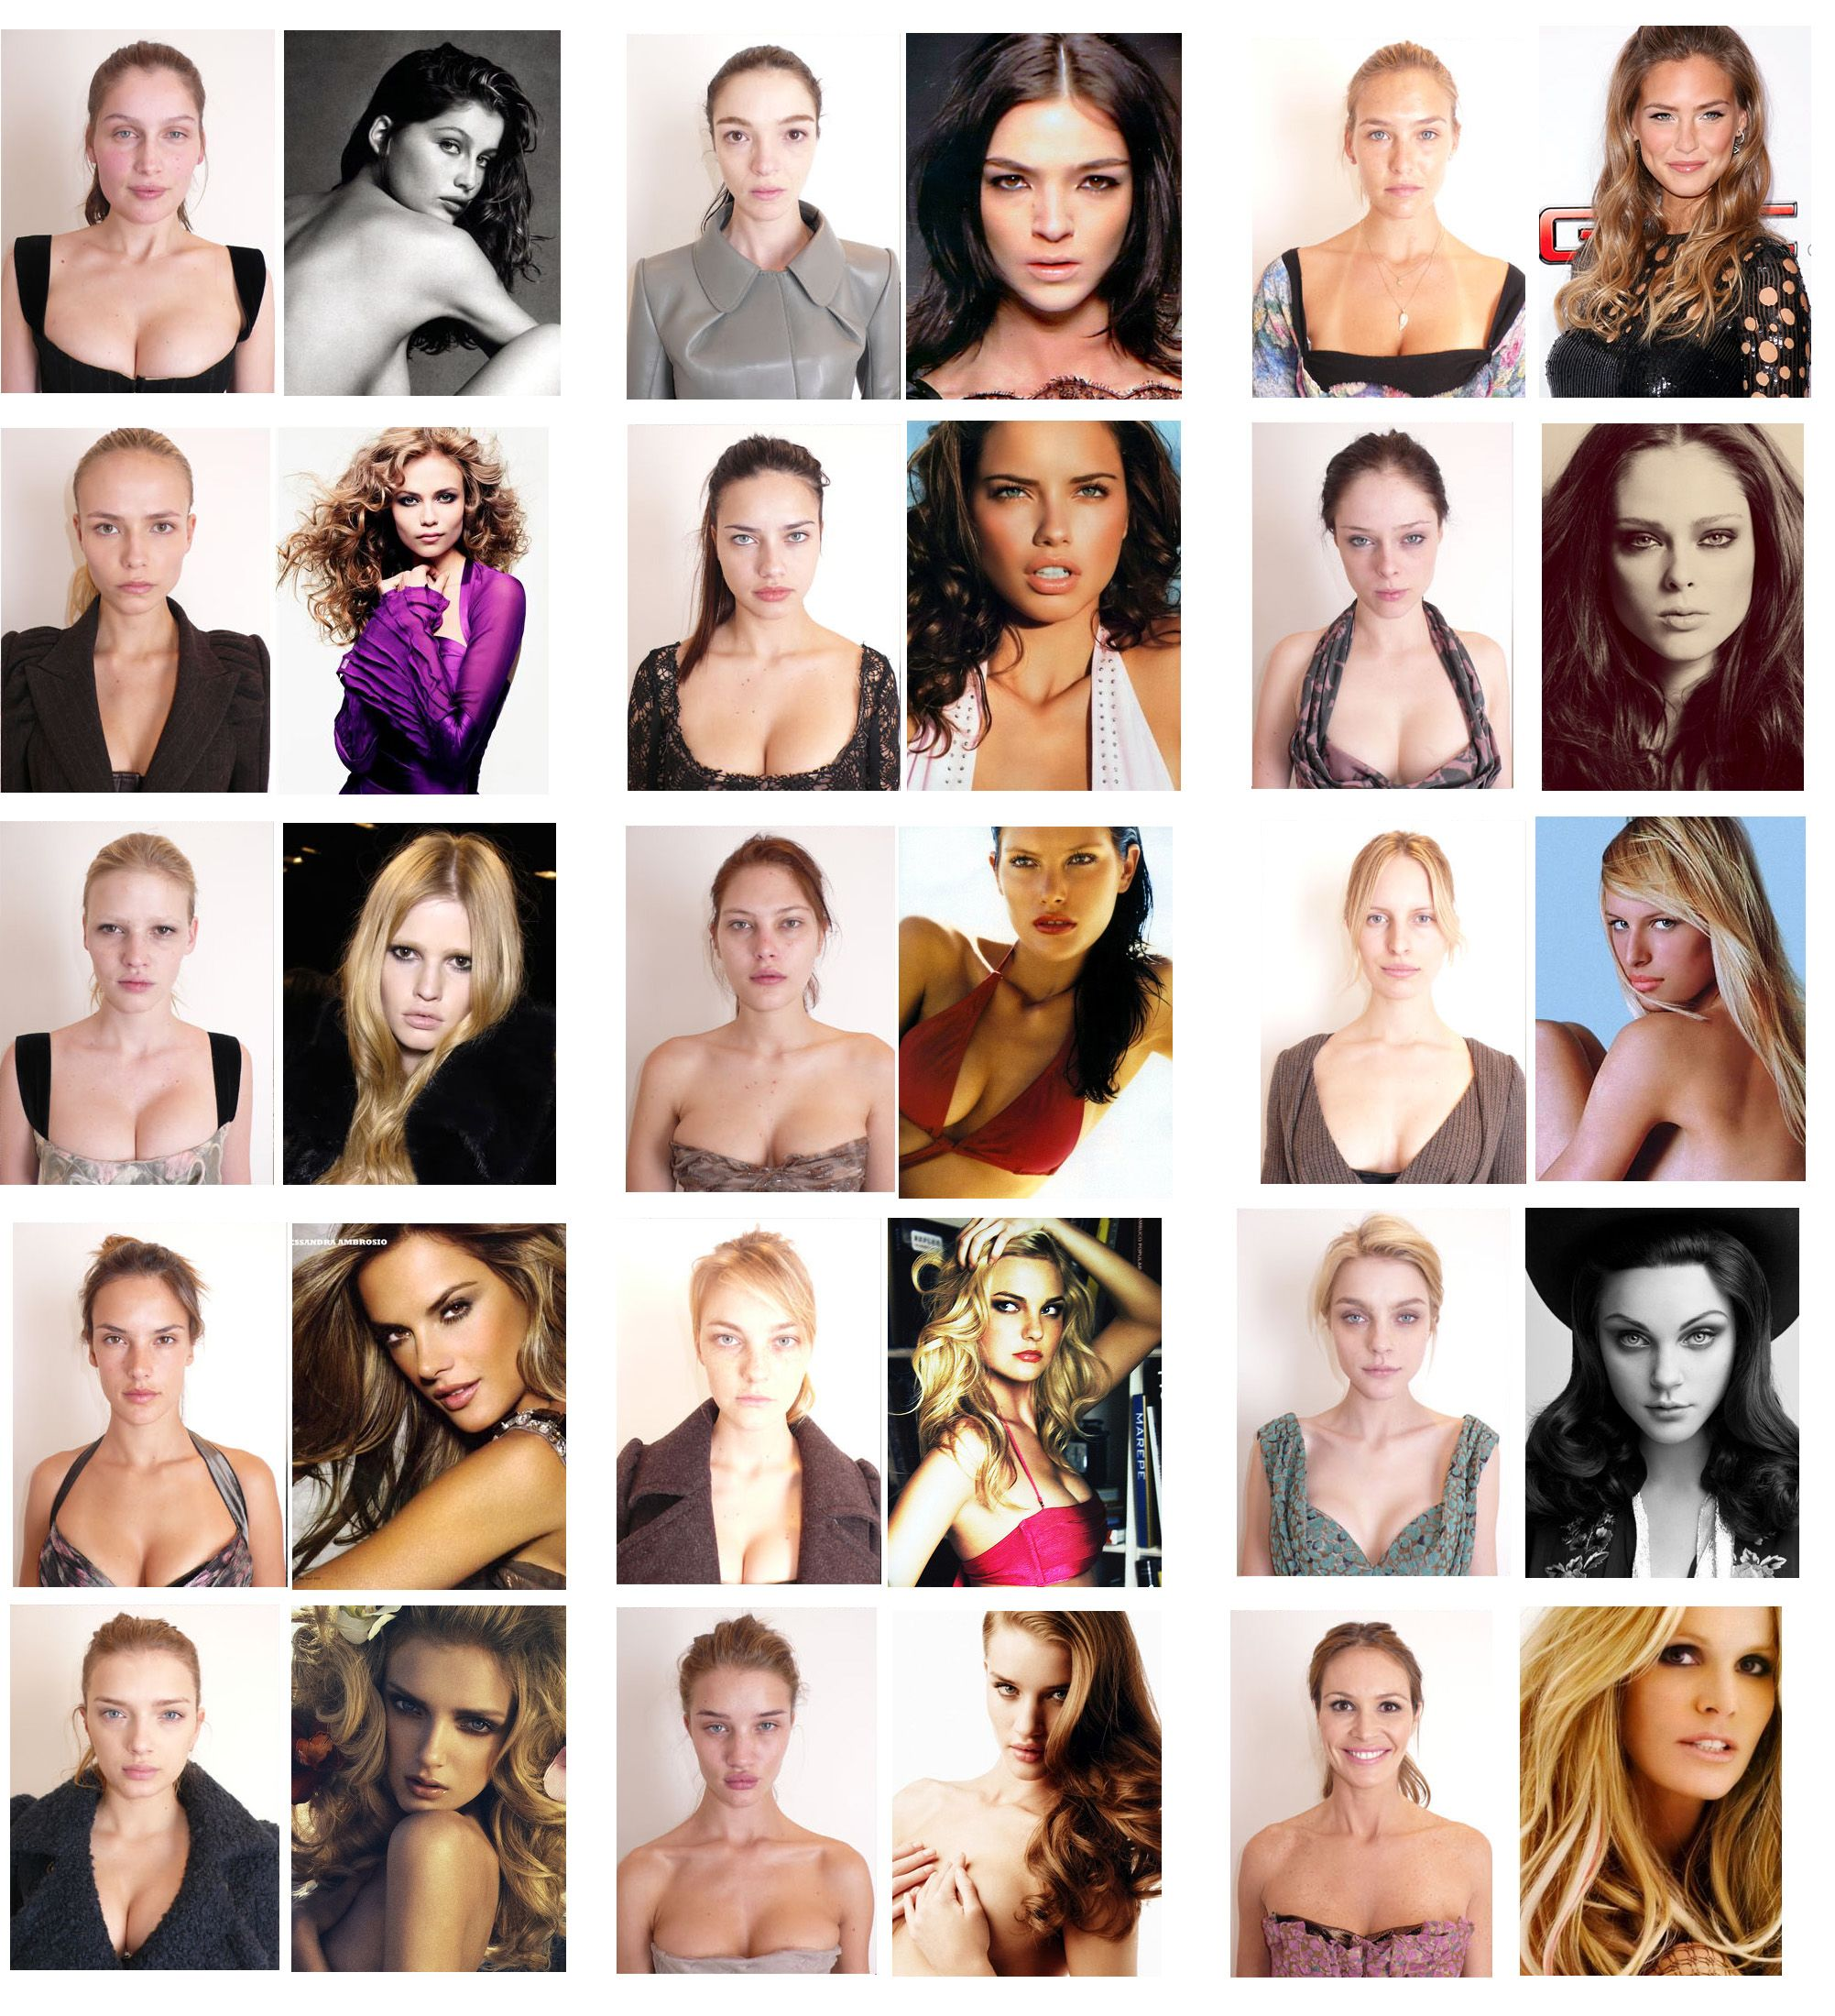 supermodels-without-makeup.jpg